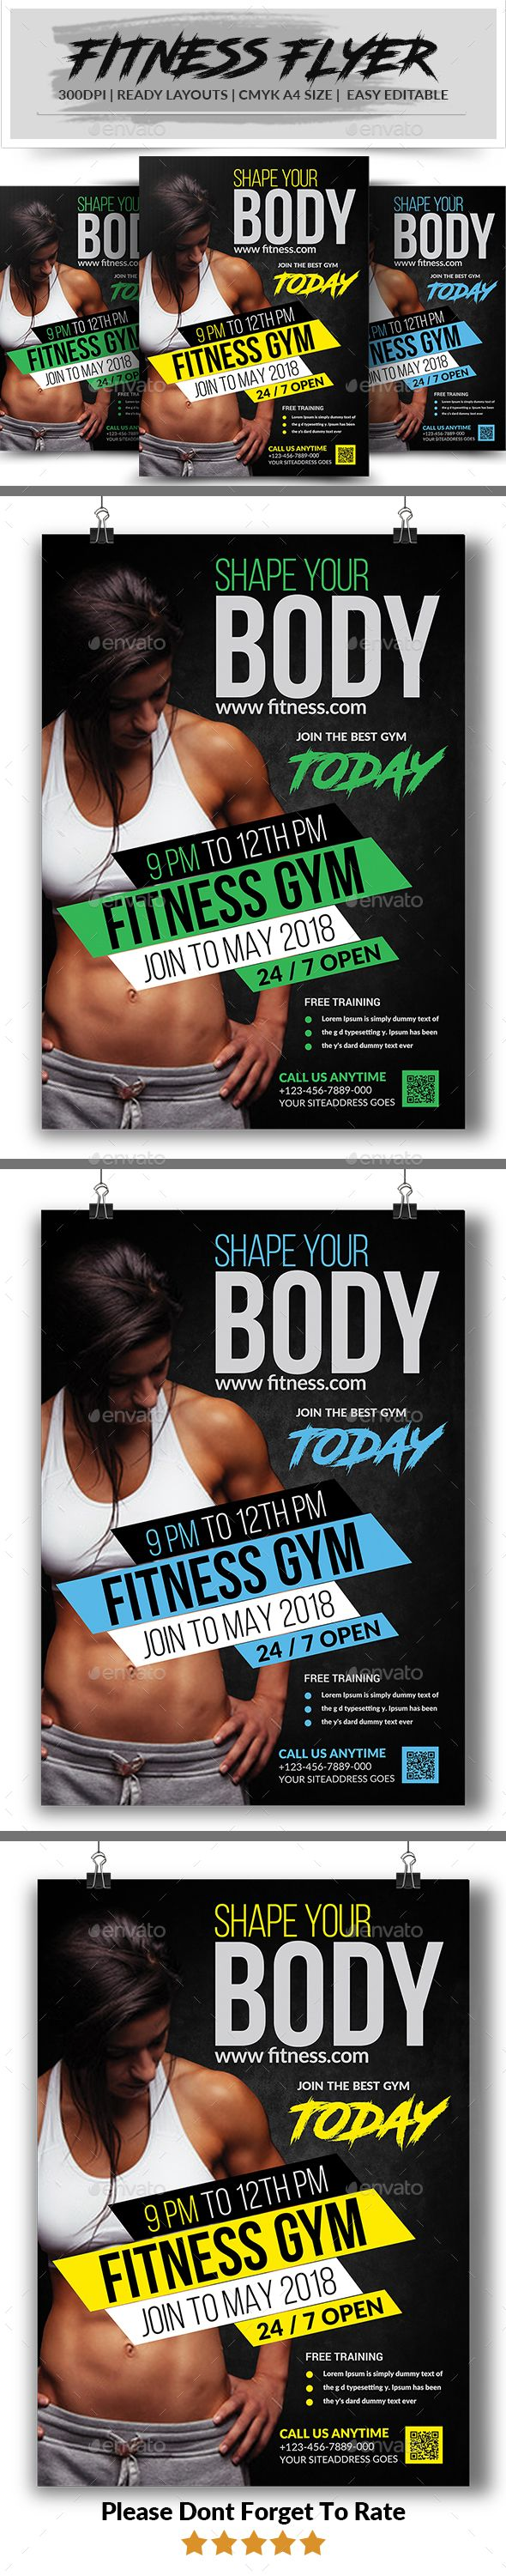 Fitness Flyer template  is a professional, clean, & creative Fitness Flyer template designed to make a good impression.  ................................................  Features :  - Editable in adobe photoshop  - Professional design  - Uses free fonts  - Al